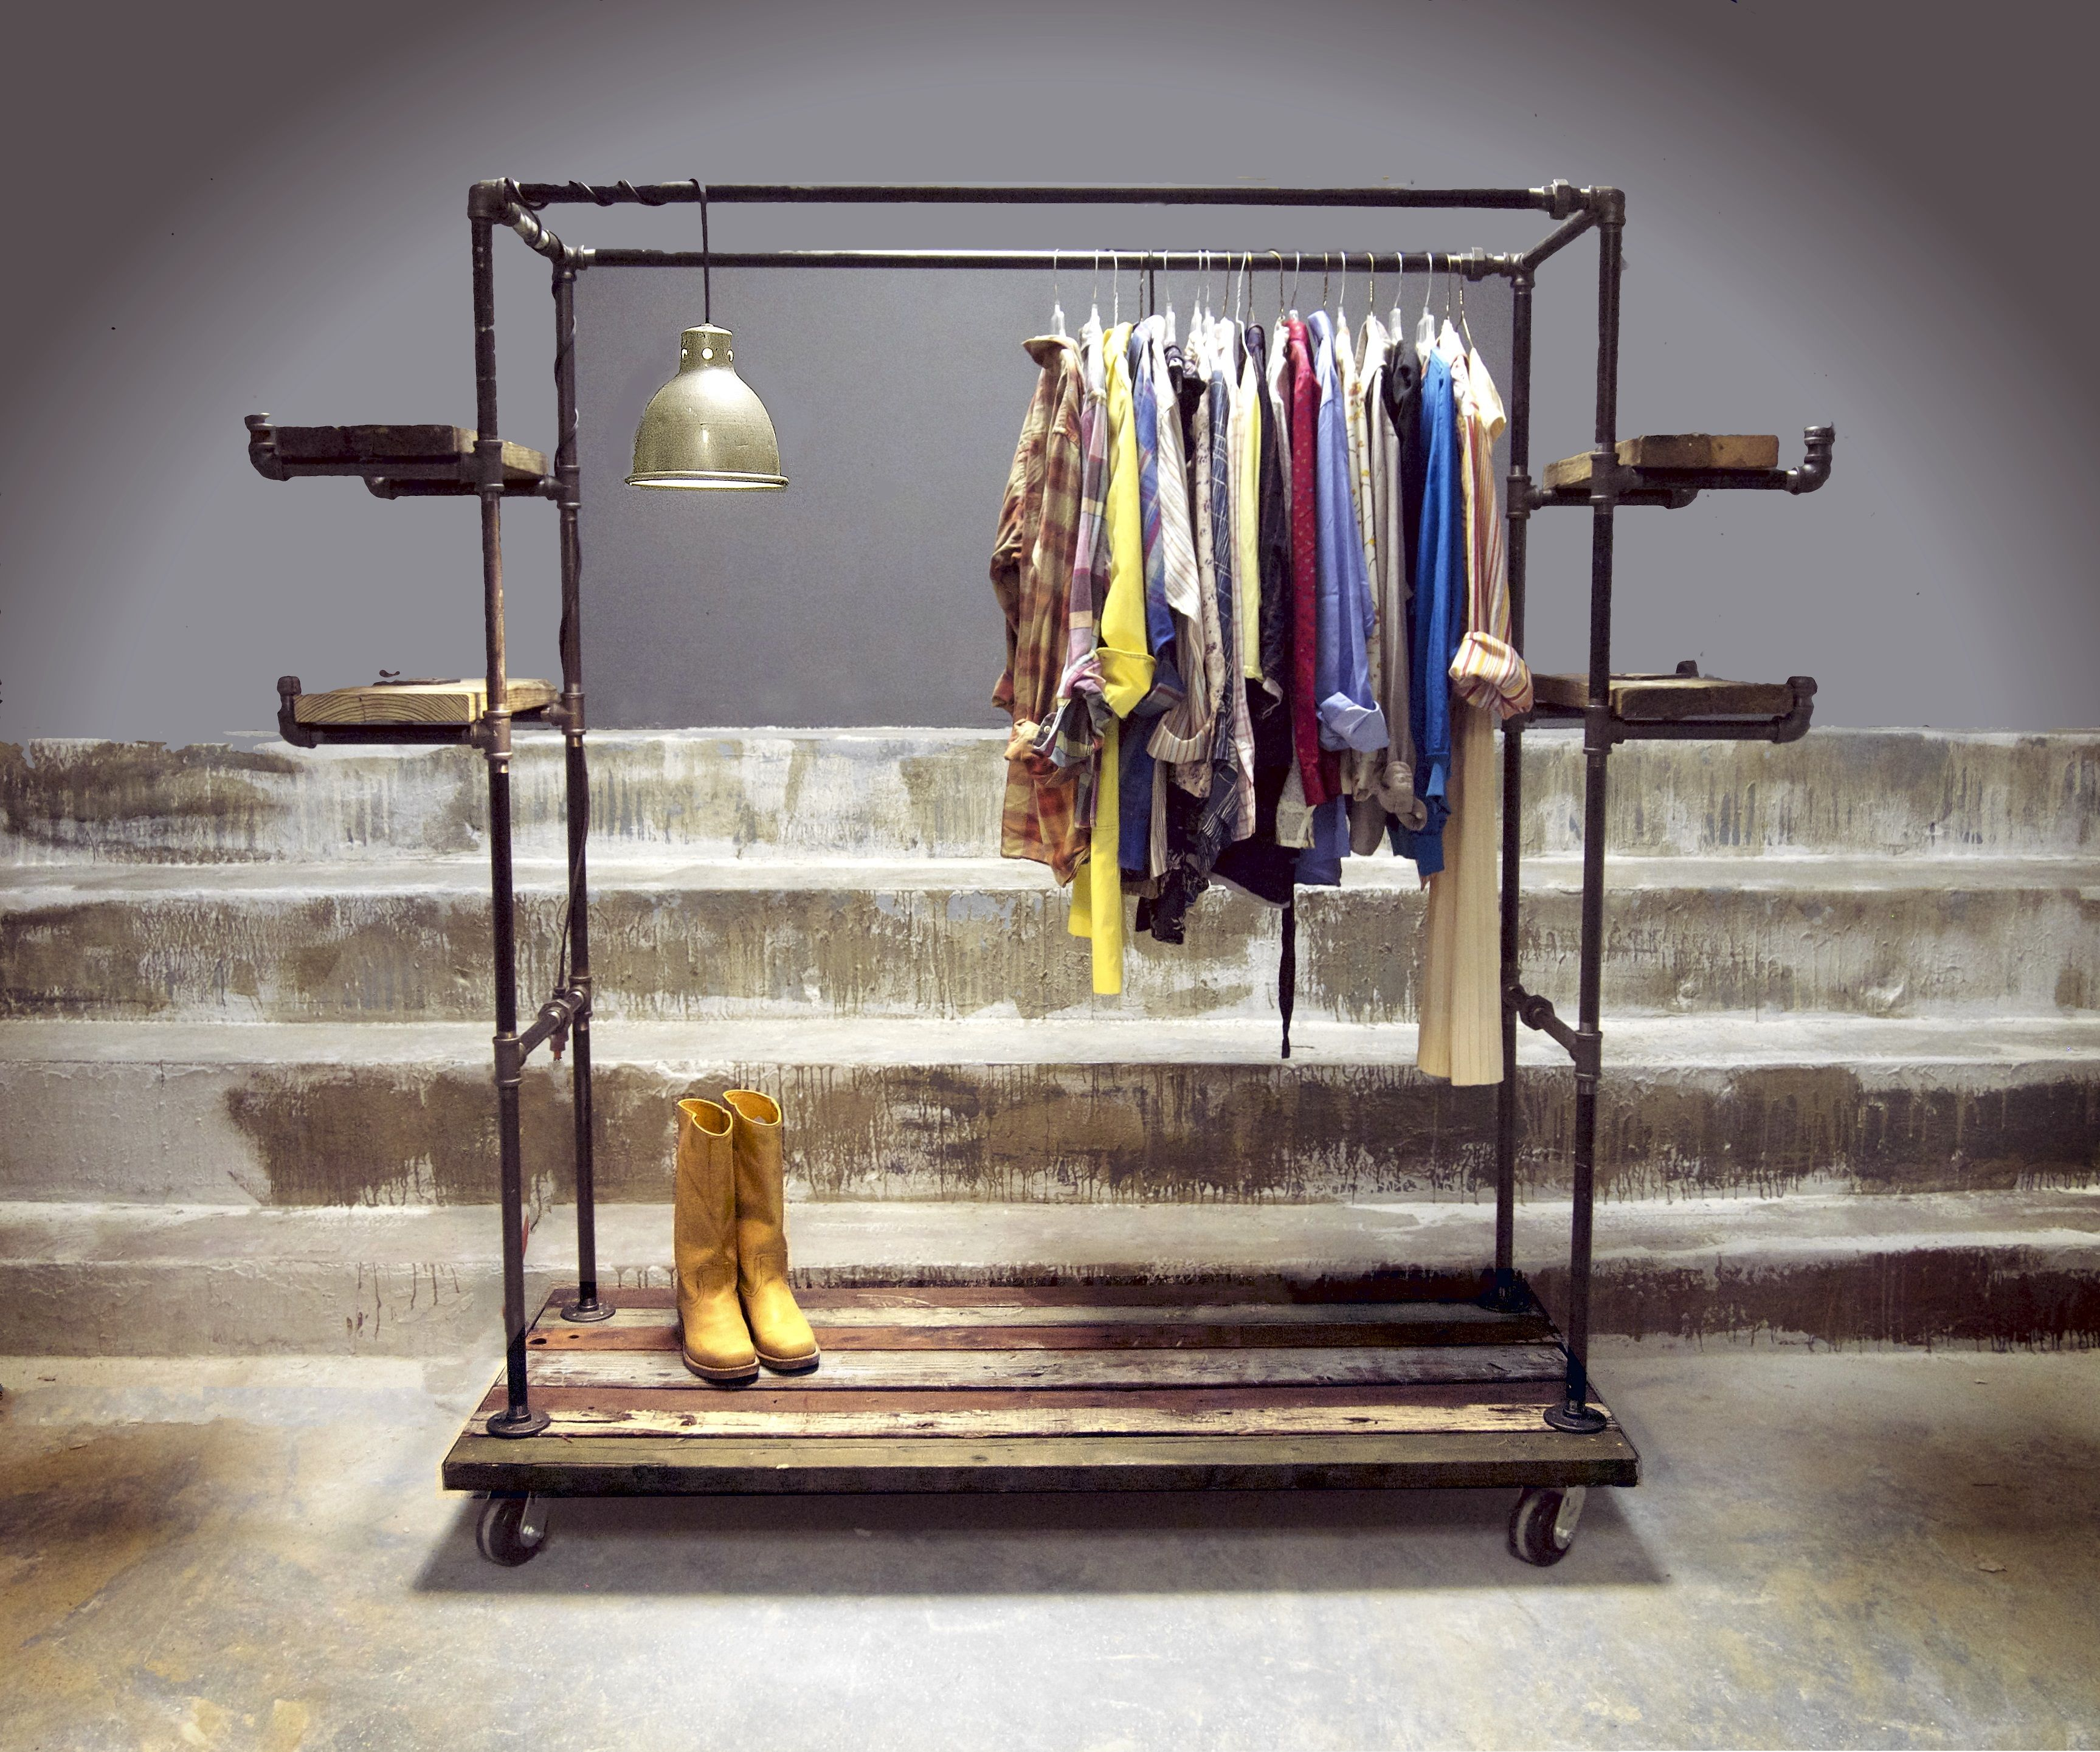 watch clothes laundry youtube hanging lofti rack drying